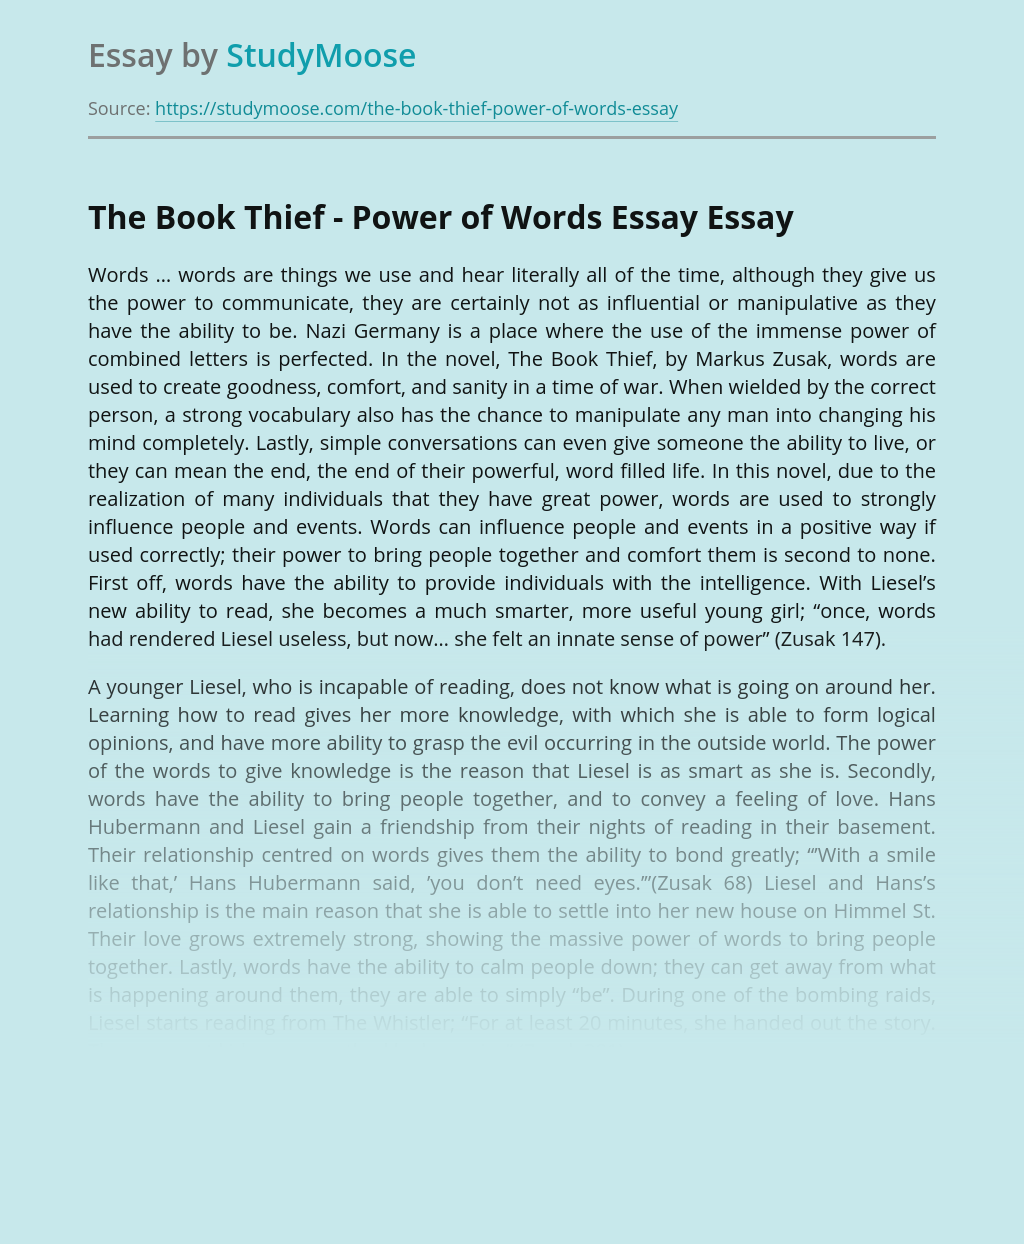 The Book Thief - Power of Words Essay